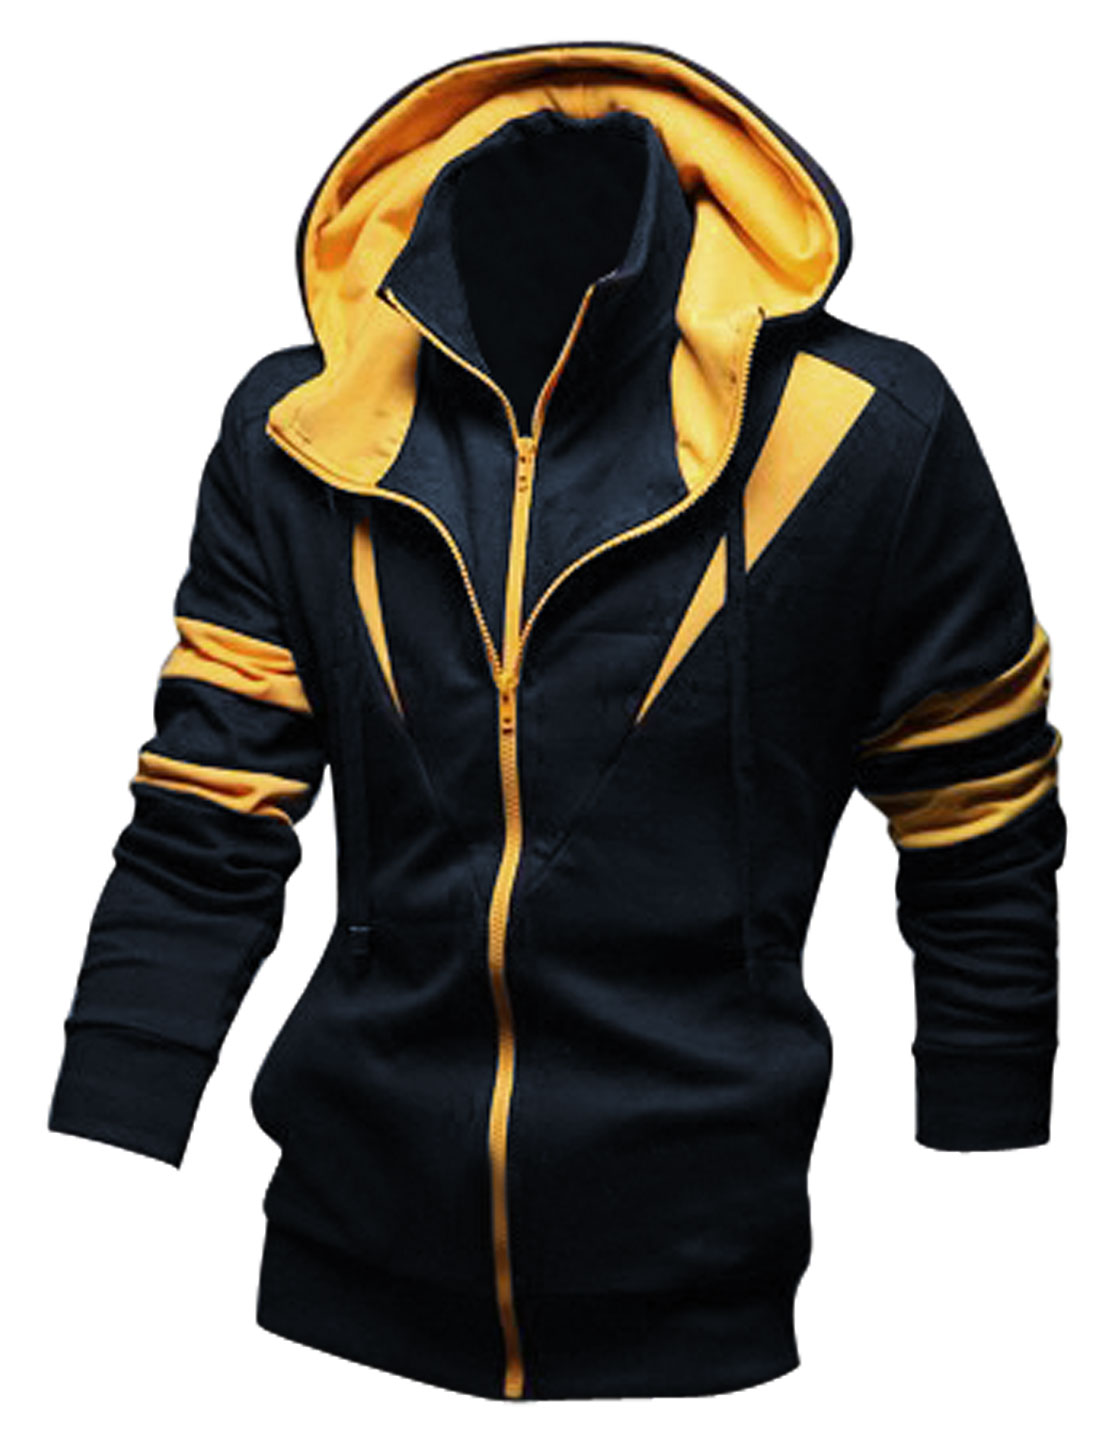 Men Navy Blue Double Zipper Convertible Collar Drawstring Hooded Jacket M